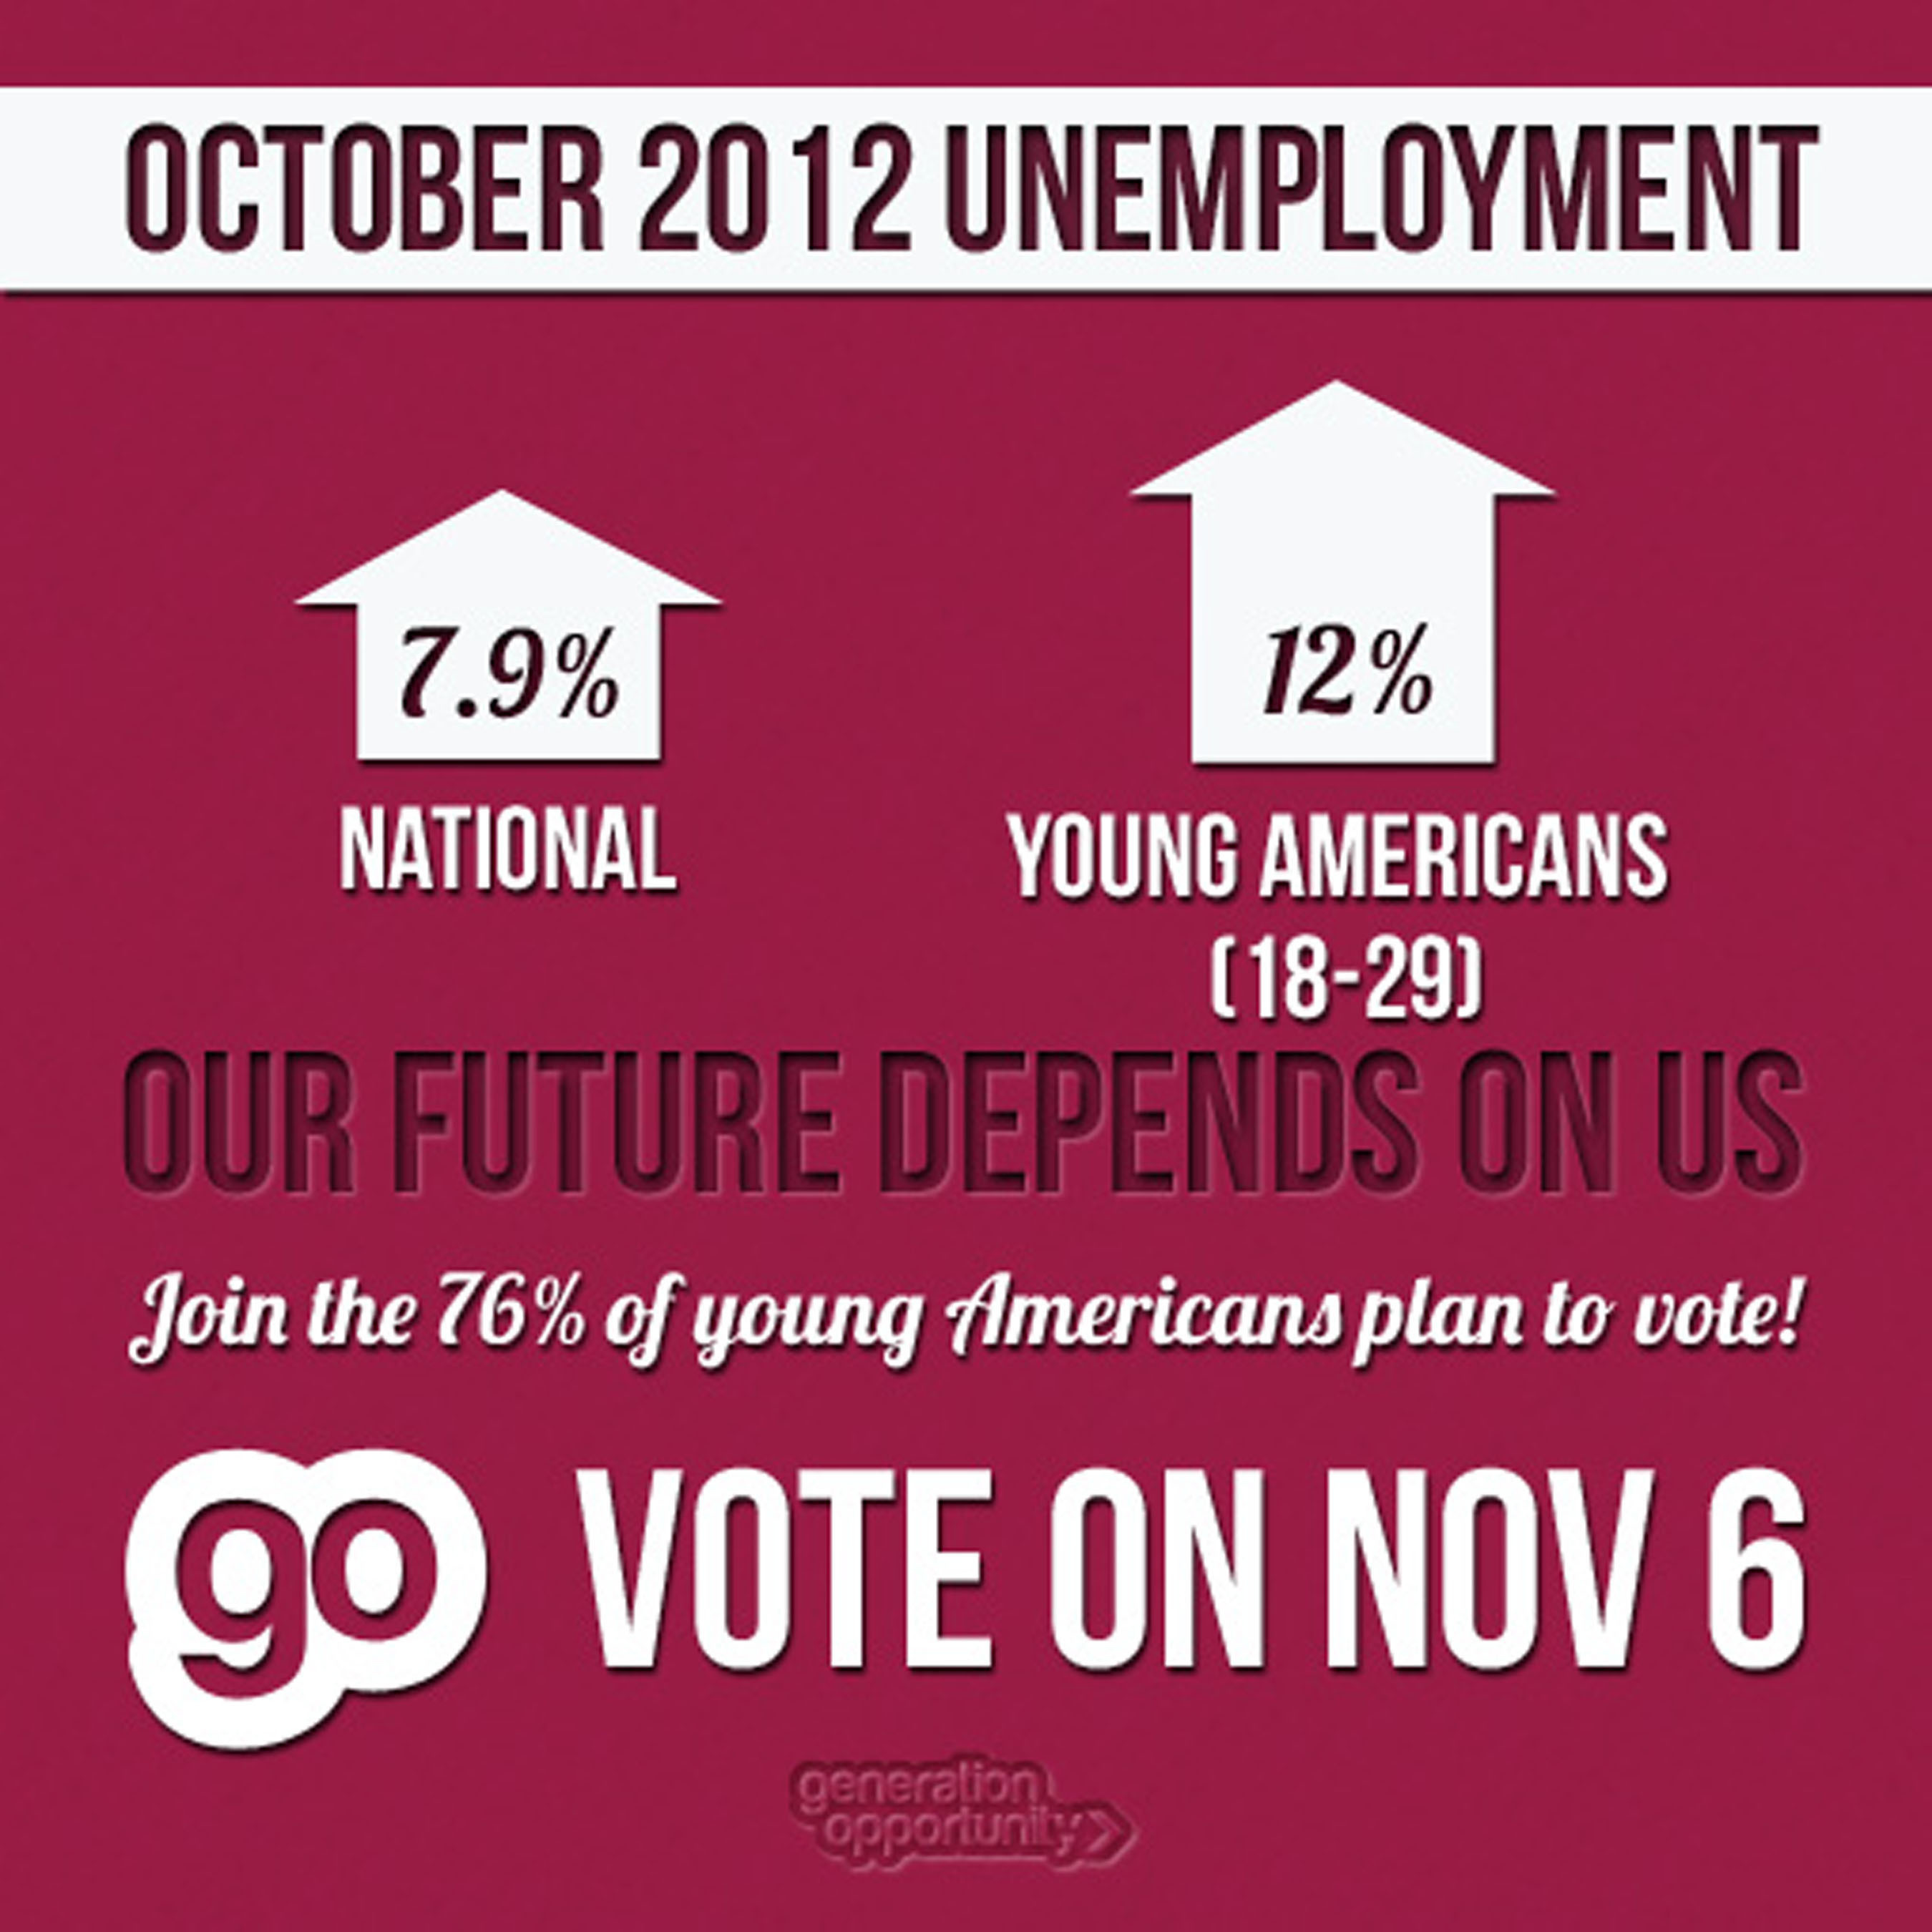 12.0 Percent Unemployment for Young Americans as Presidential Election Nears